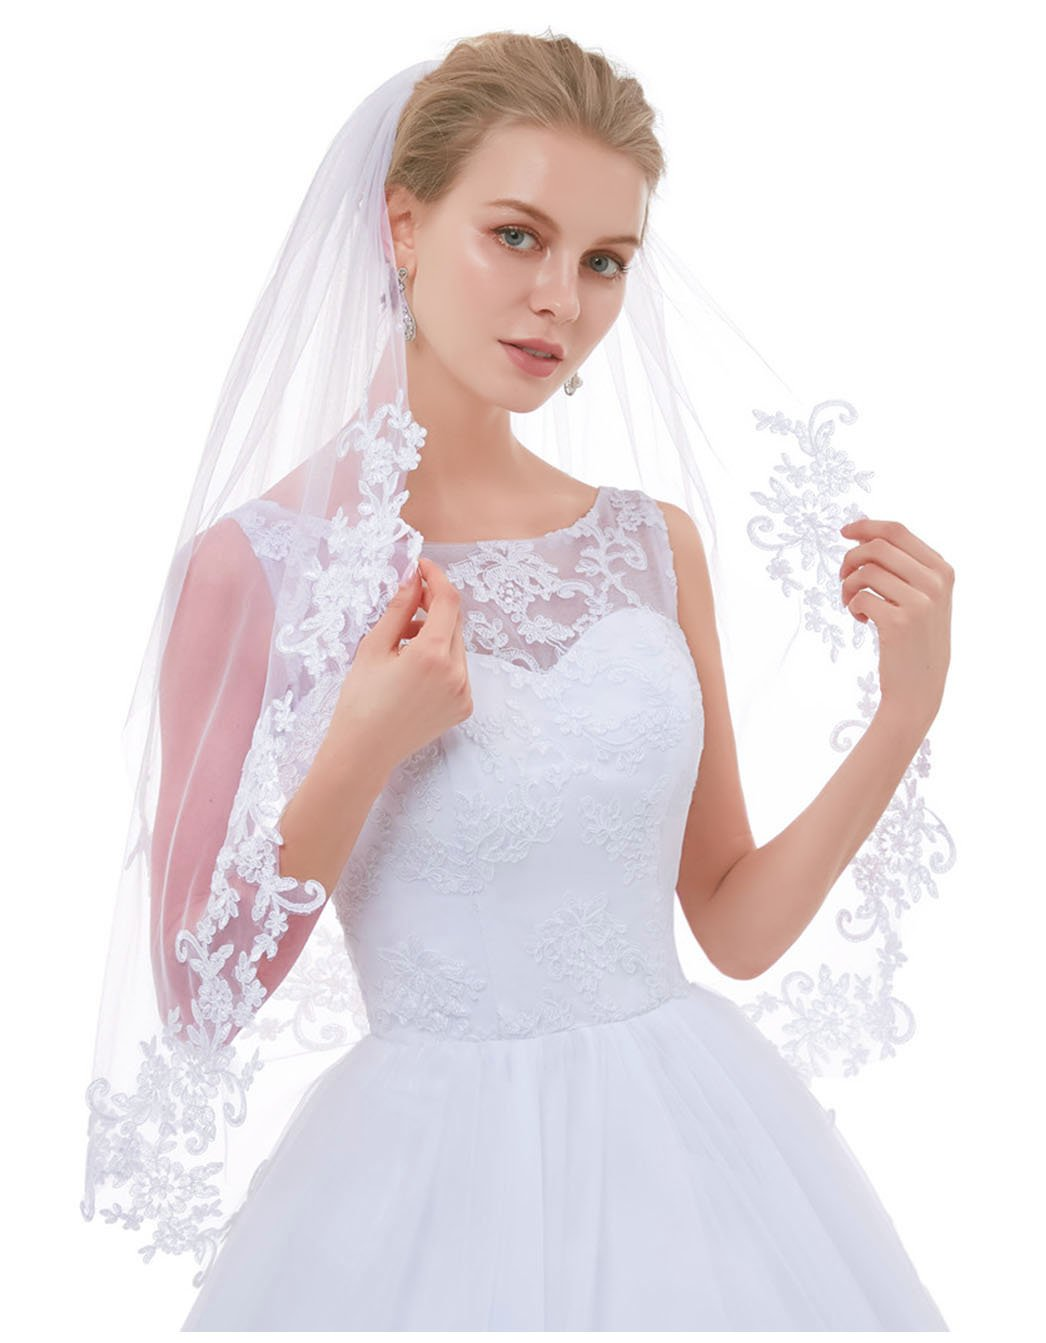 Greenia Soft Tulle 2 Tier Lace Wedding Veil for Bride GN-V12